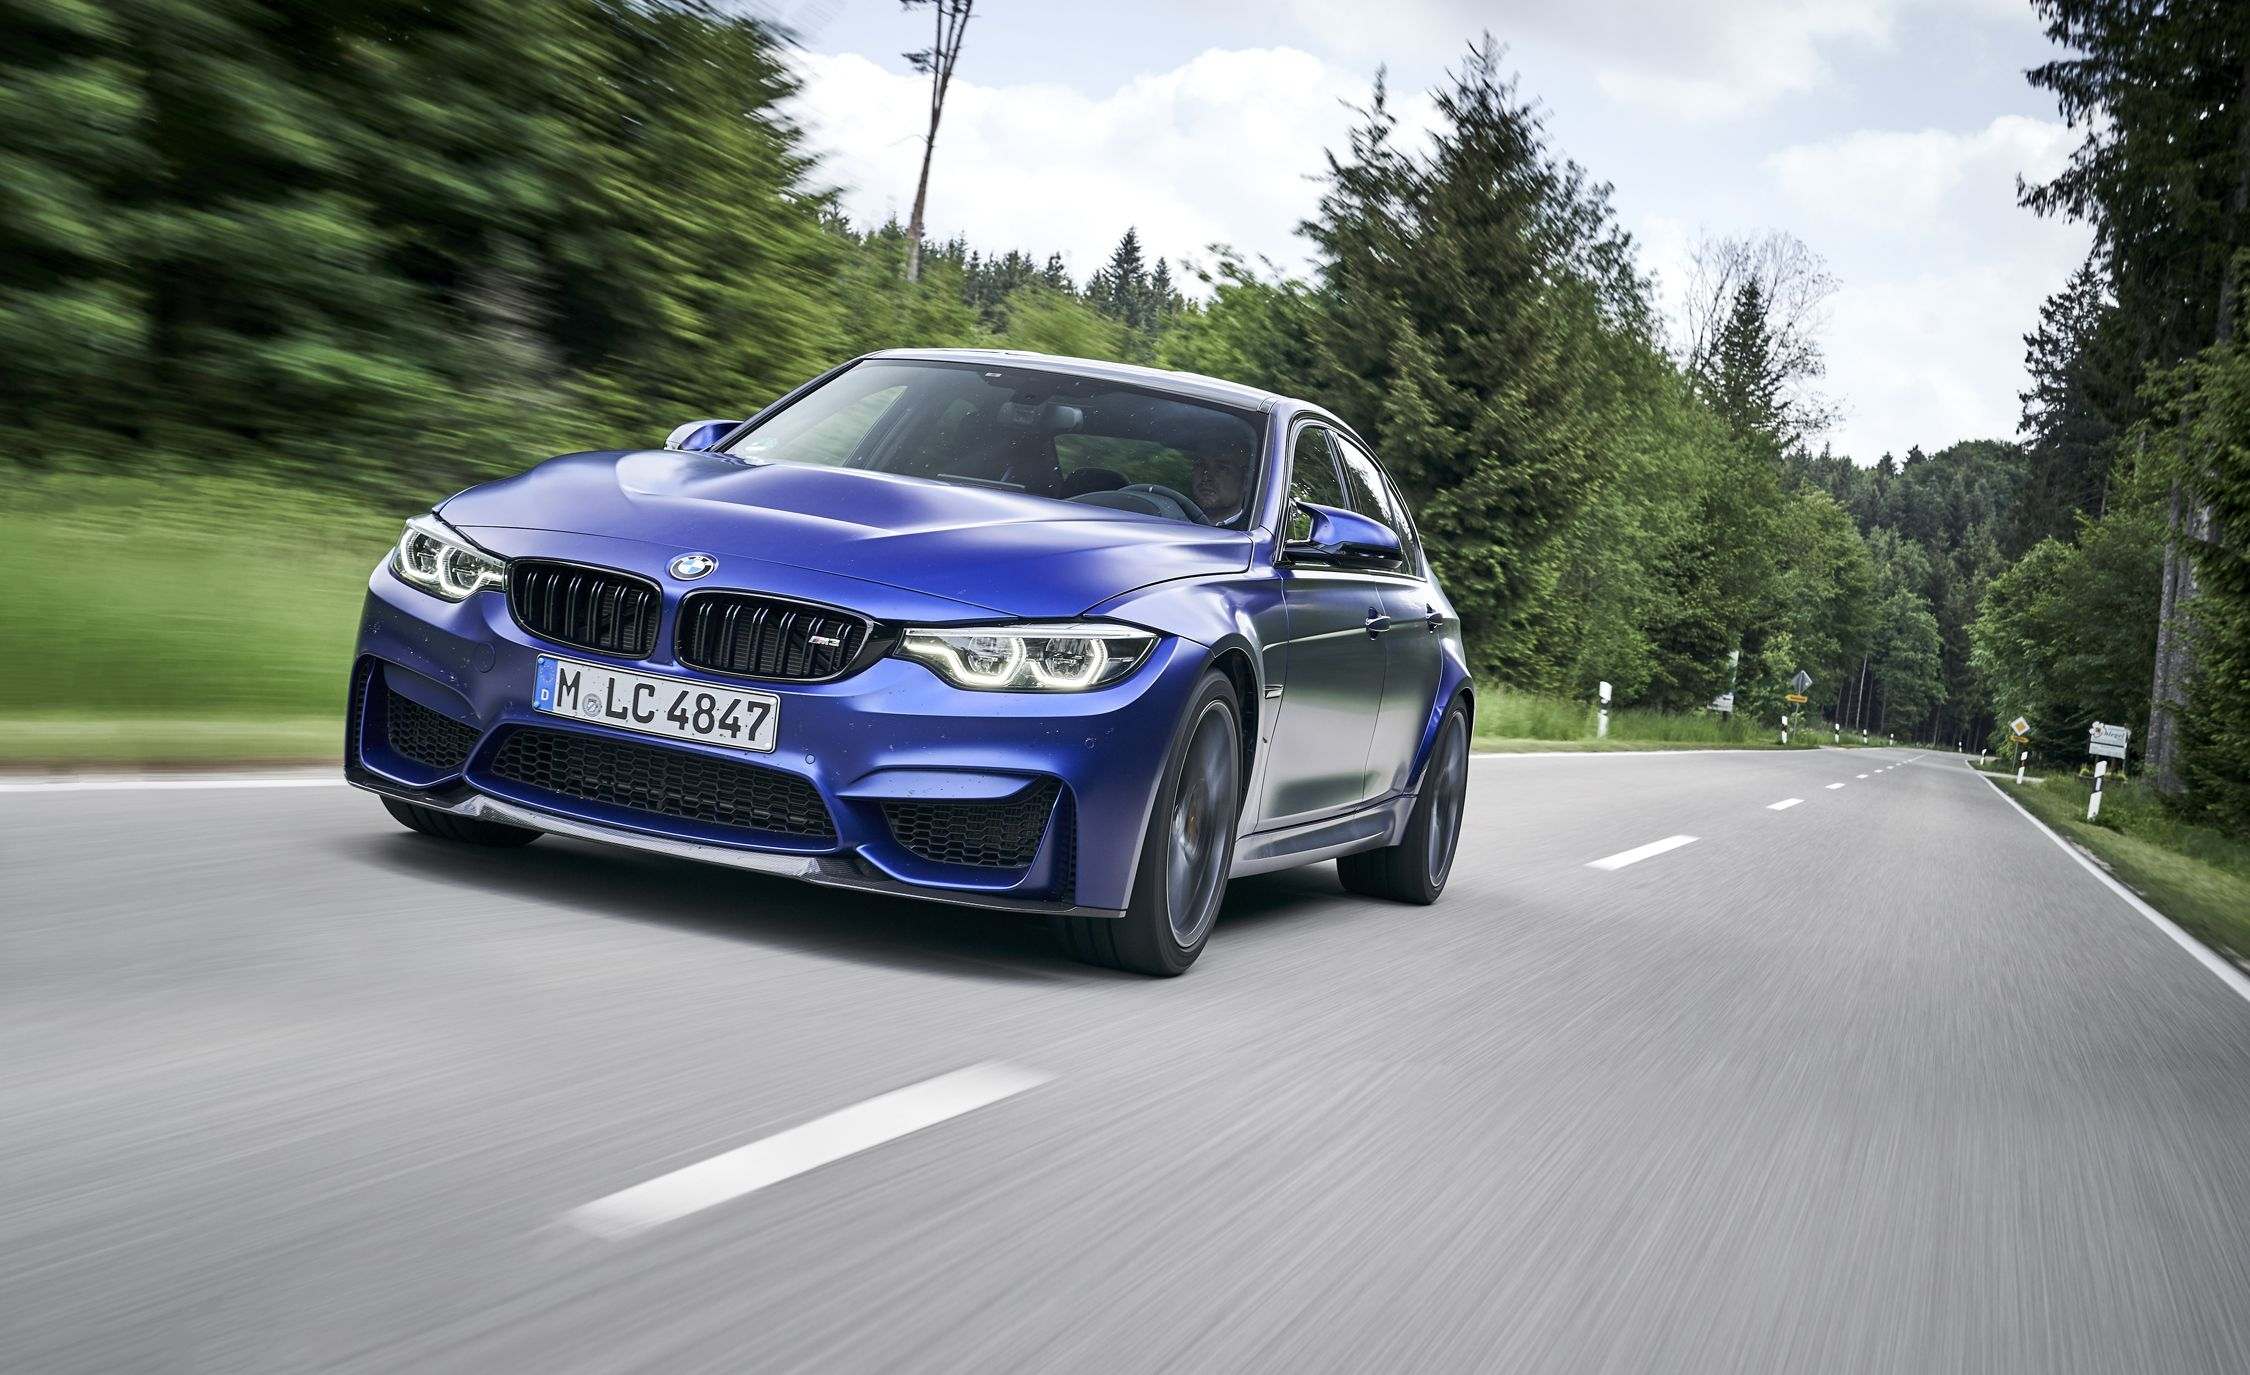 First Drive Of The Bmw M3 Cs The Best One Yet